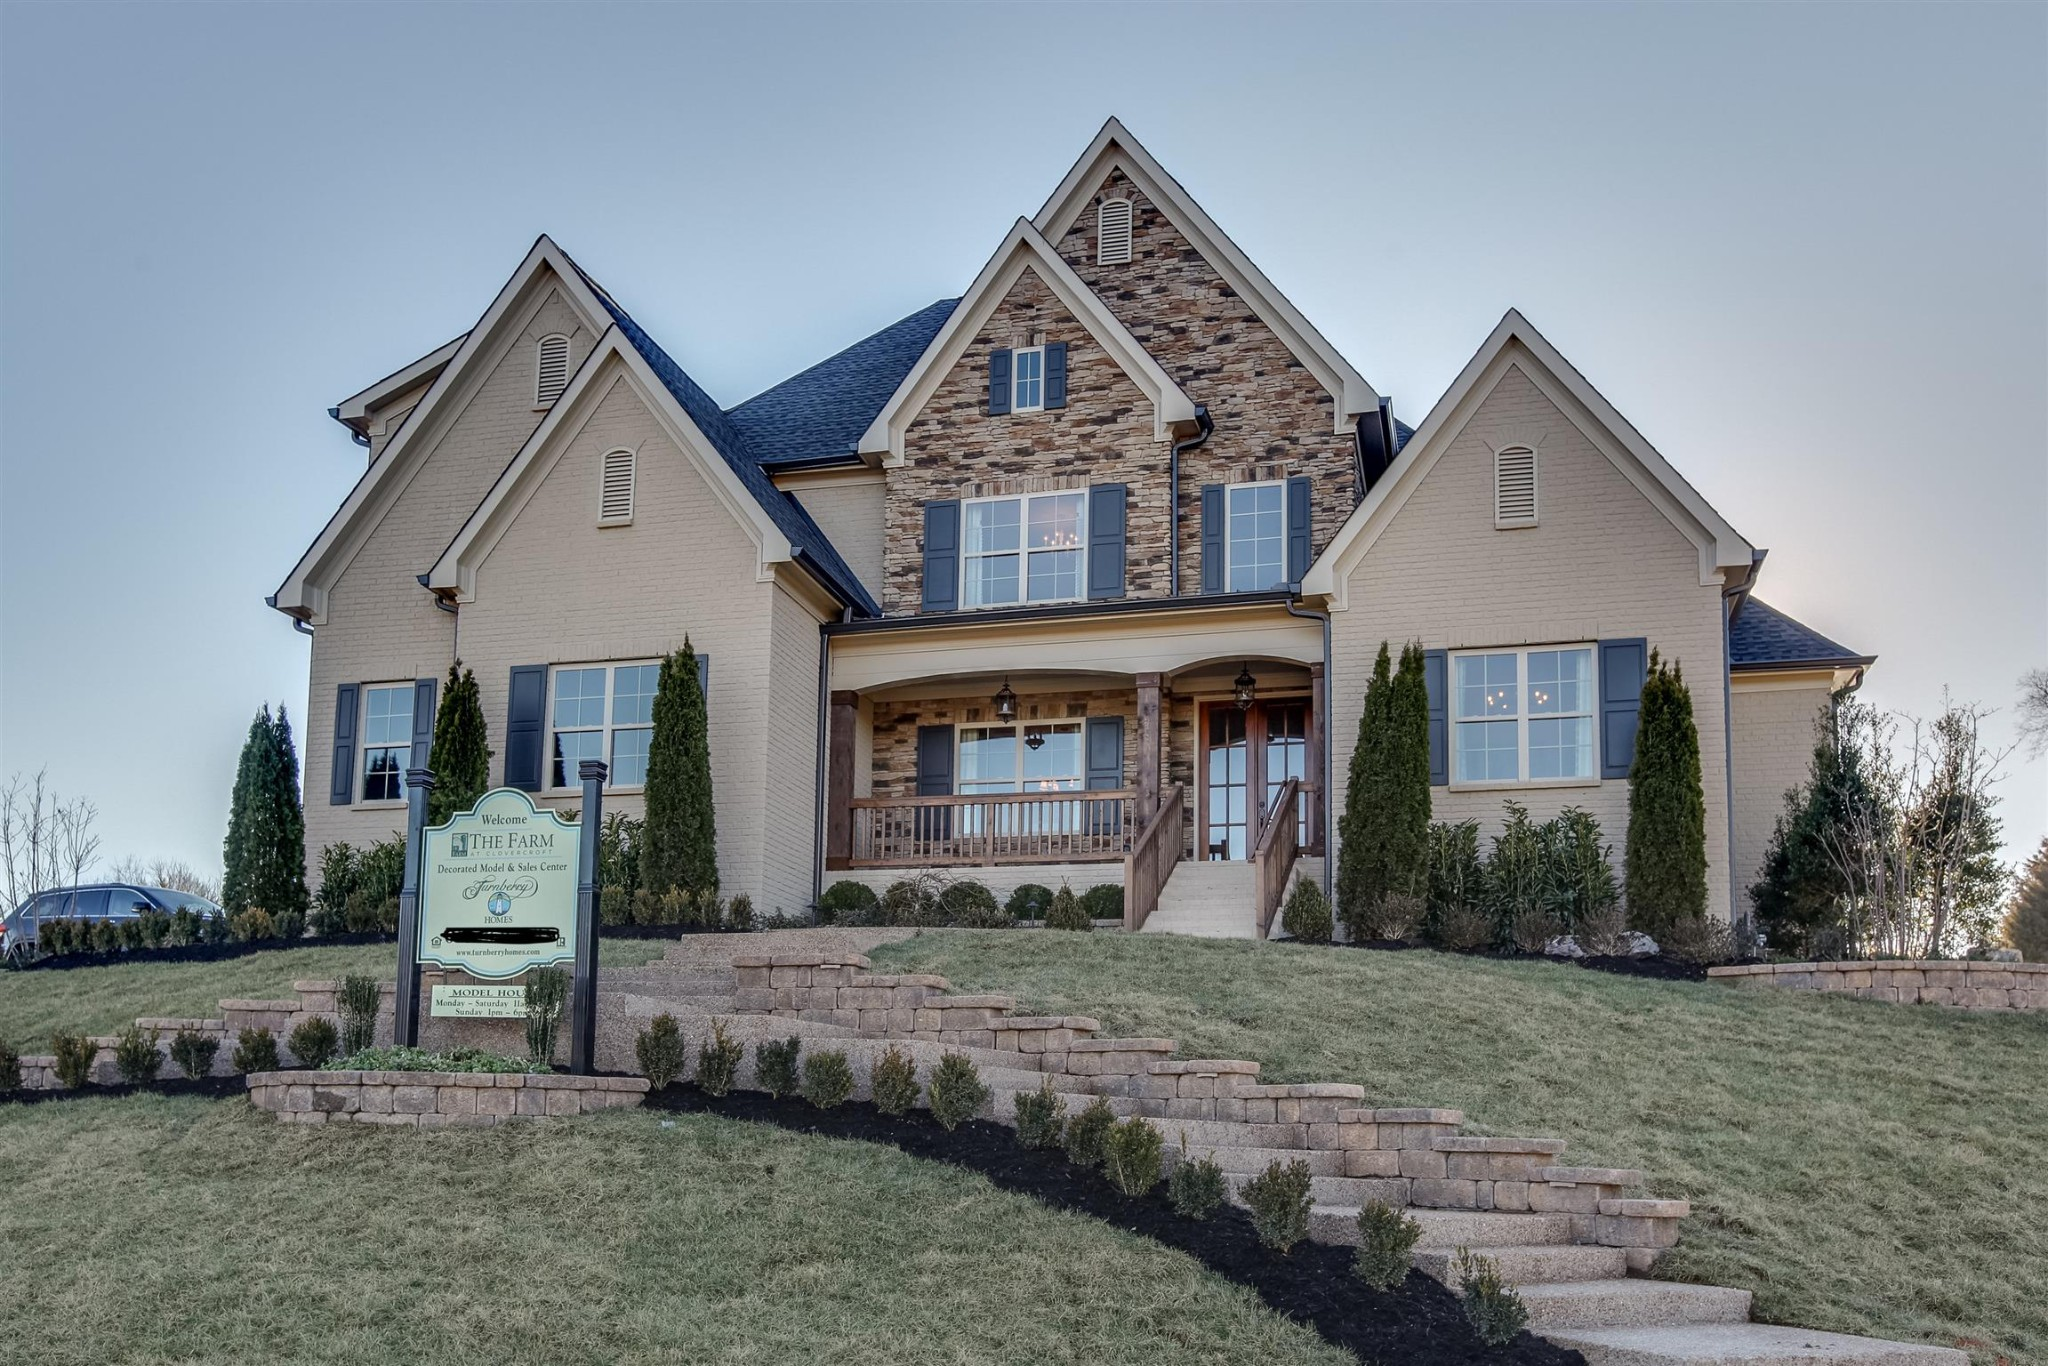 9105 Holstein Dr, Lot 119, Nolensville, TN 37135 - Nolensville, TN real estate listing